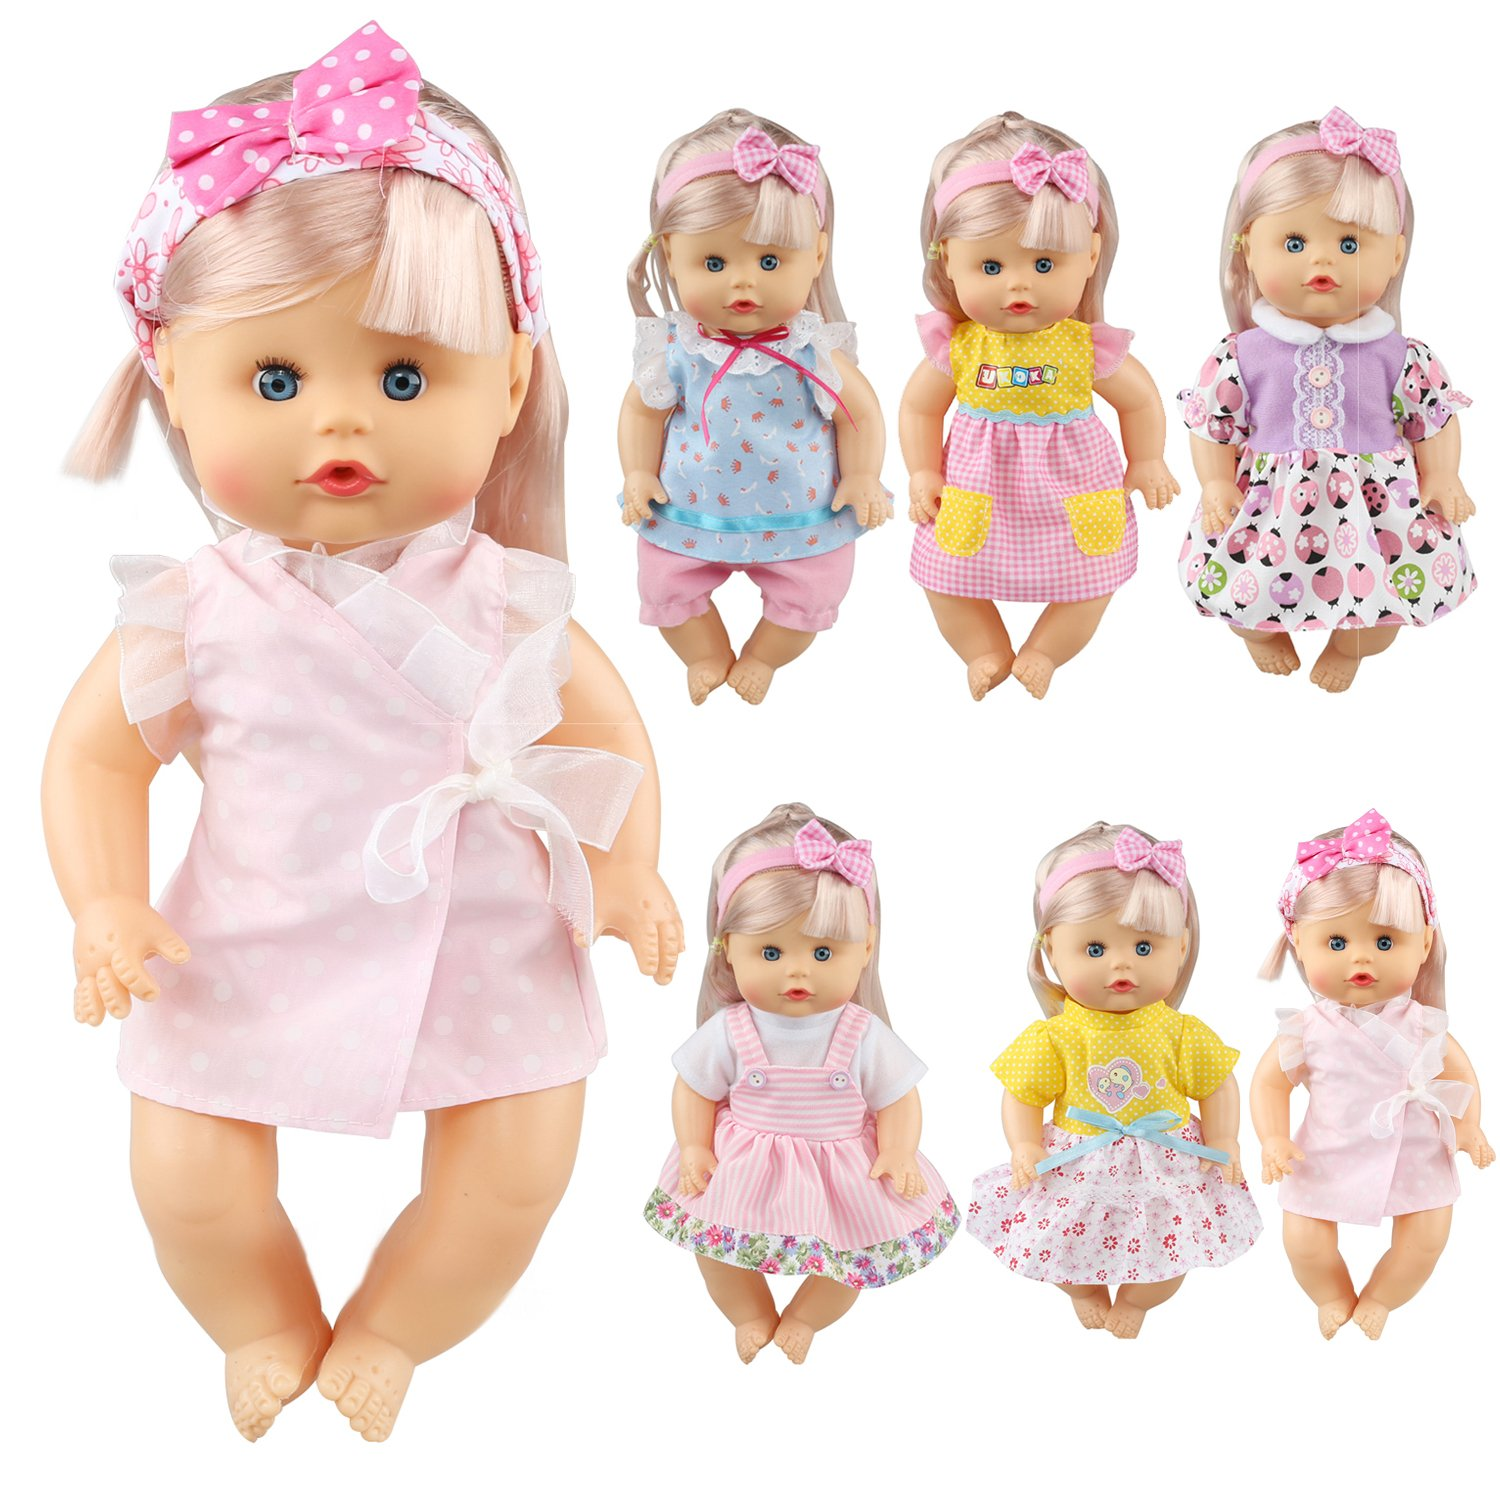 Pack of 6 Fit for 12 Inch Alive Baby Doll Dress Clothes Fashionista Gown Outfits Include Hair Band For Girls American Doll